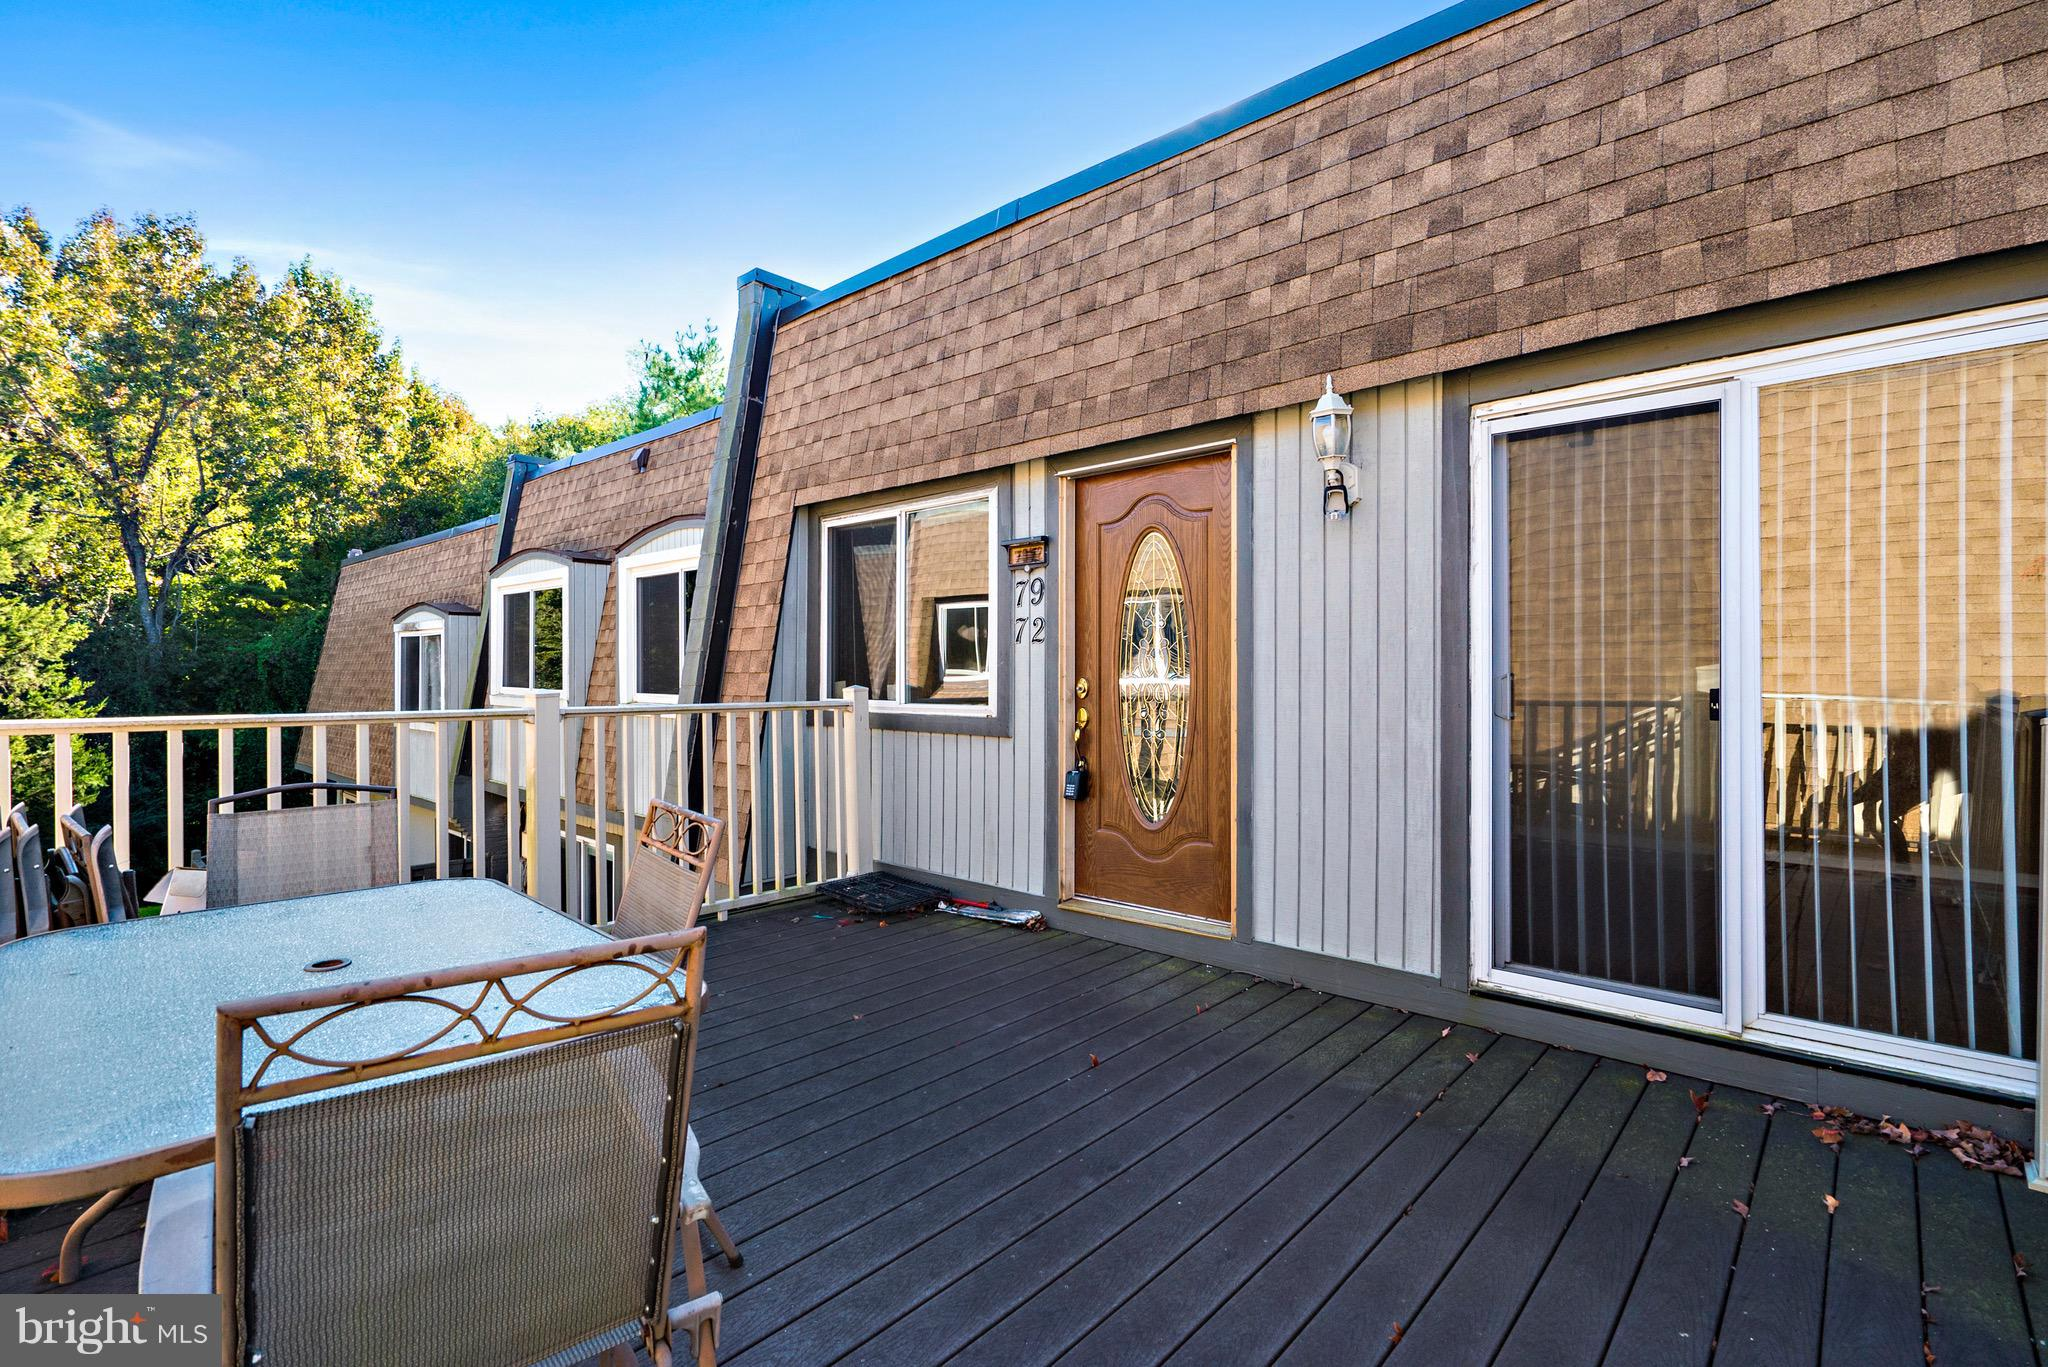 3 Bedroom 2 Bath condo featuring a wood burning fireplace and deck. Nice open living space and extra storage shed. Development offers tot lots, swimming pool, basketball court, tennis court, community center & much more. Sale subject to the approval of H. Jason Gold, Chapter 7 Trustee, and the approval of the US Bankruptcy Court.